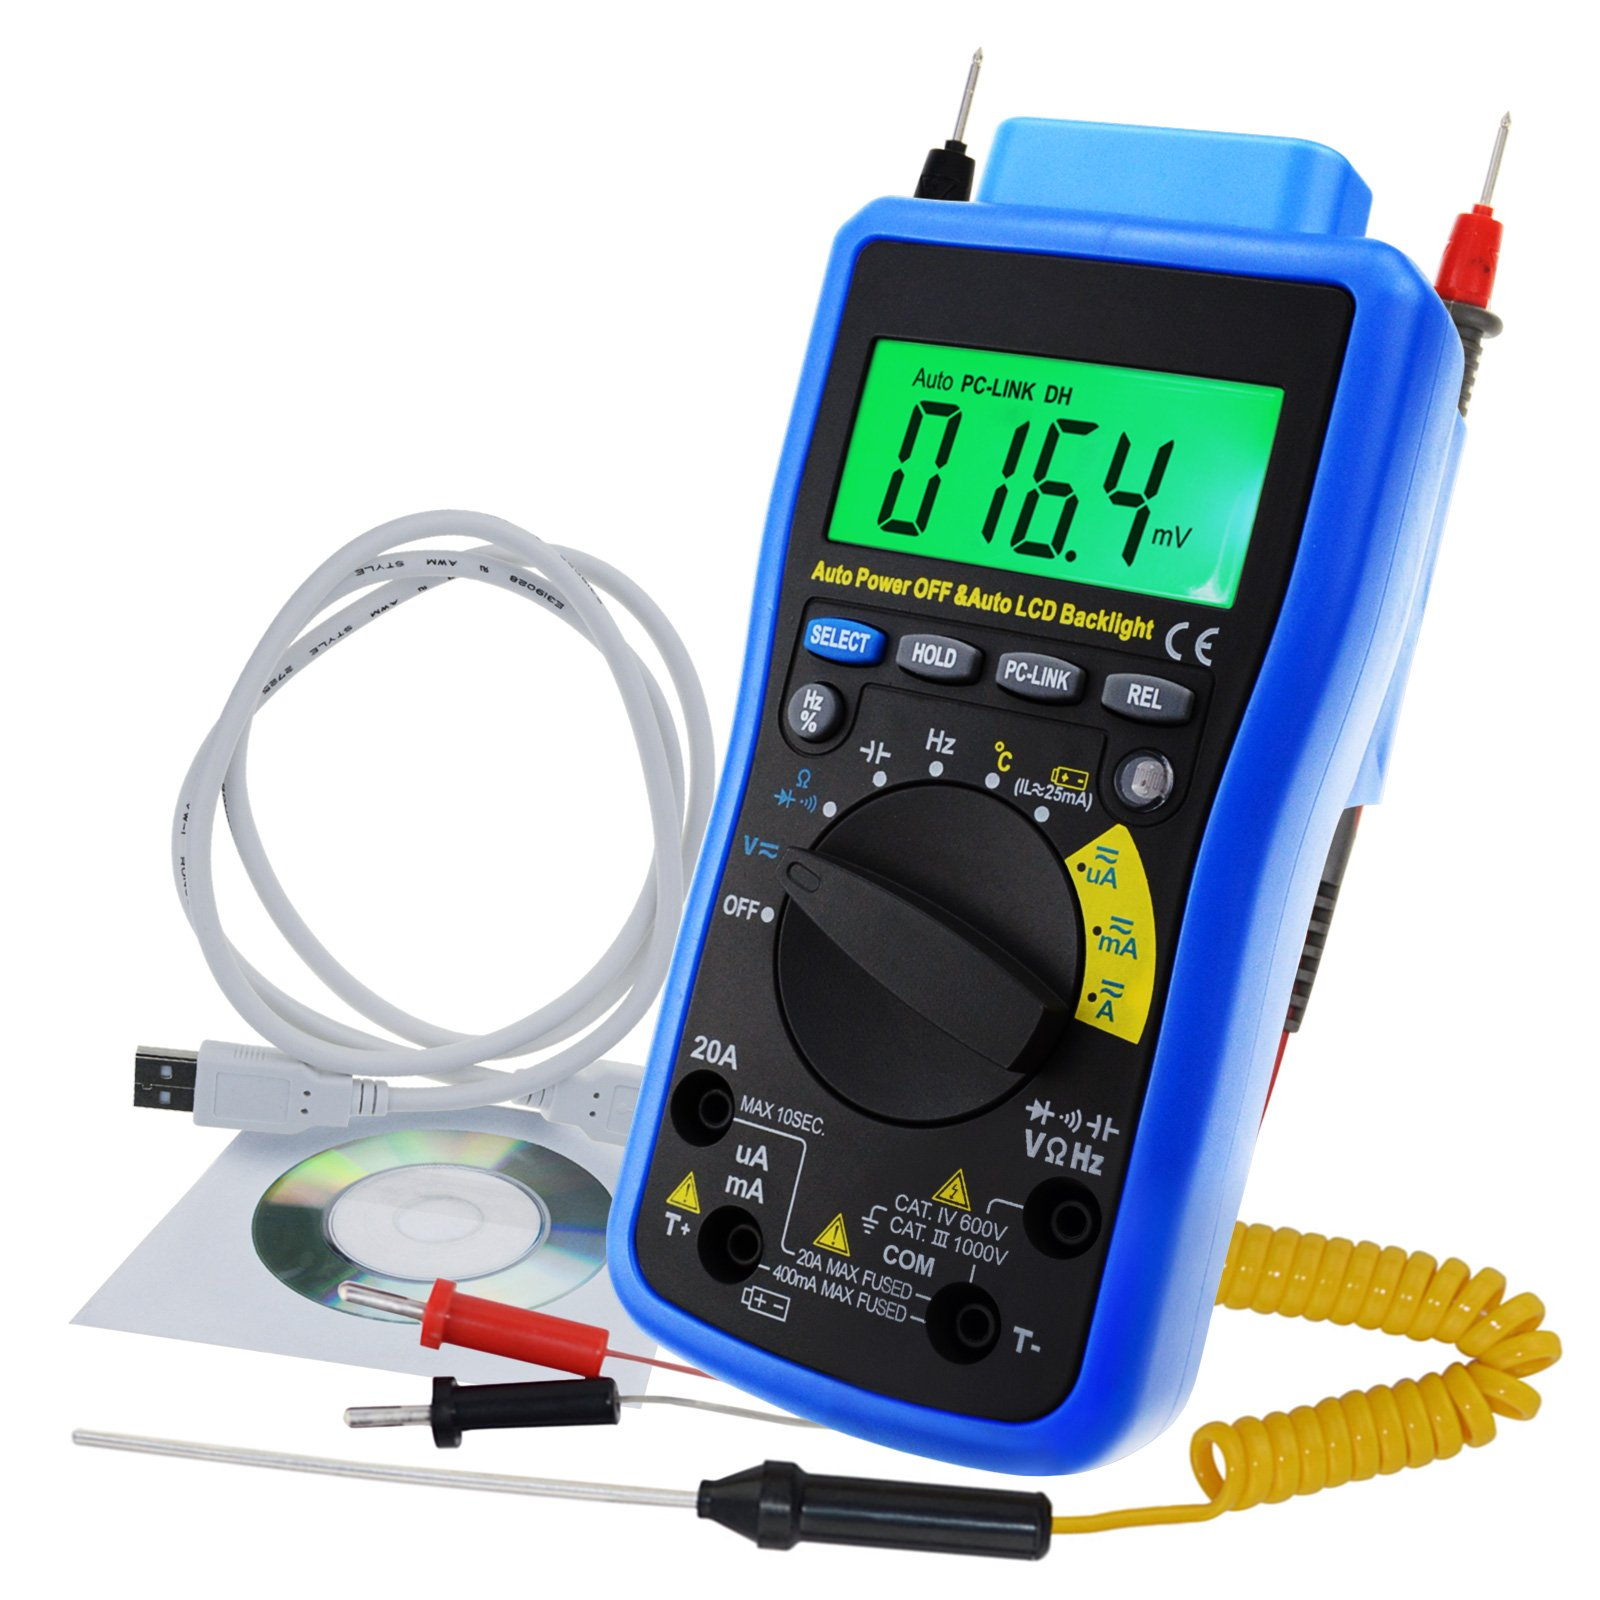 Digital DMM Multimeter Meter Tester with USB/ Software CD and Data Output Function, AC DC voltage, AC DC current, Auto Range, Capacitance, Resistance, Frequency, Diode and Continuity Test, Duty Cycle